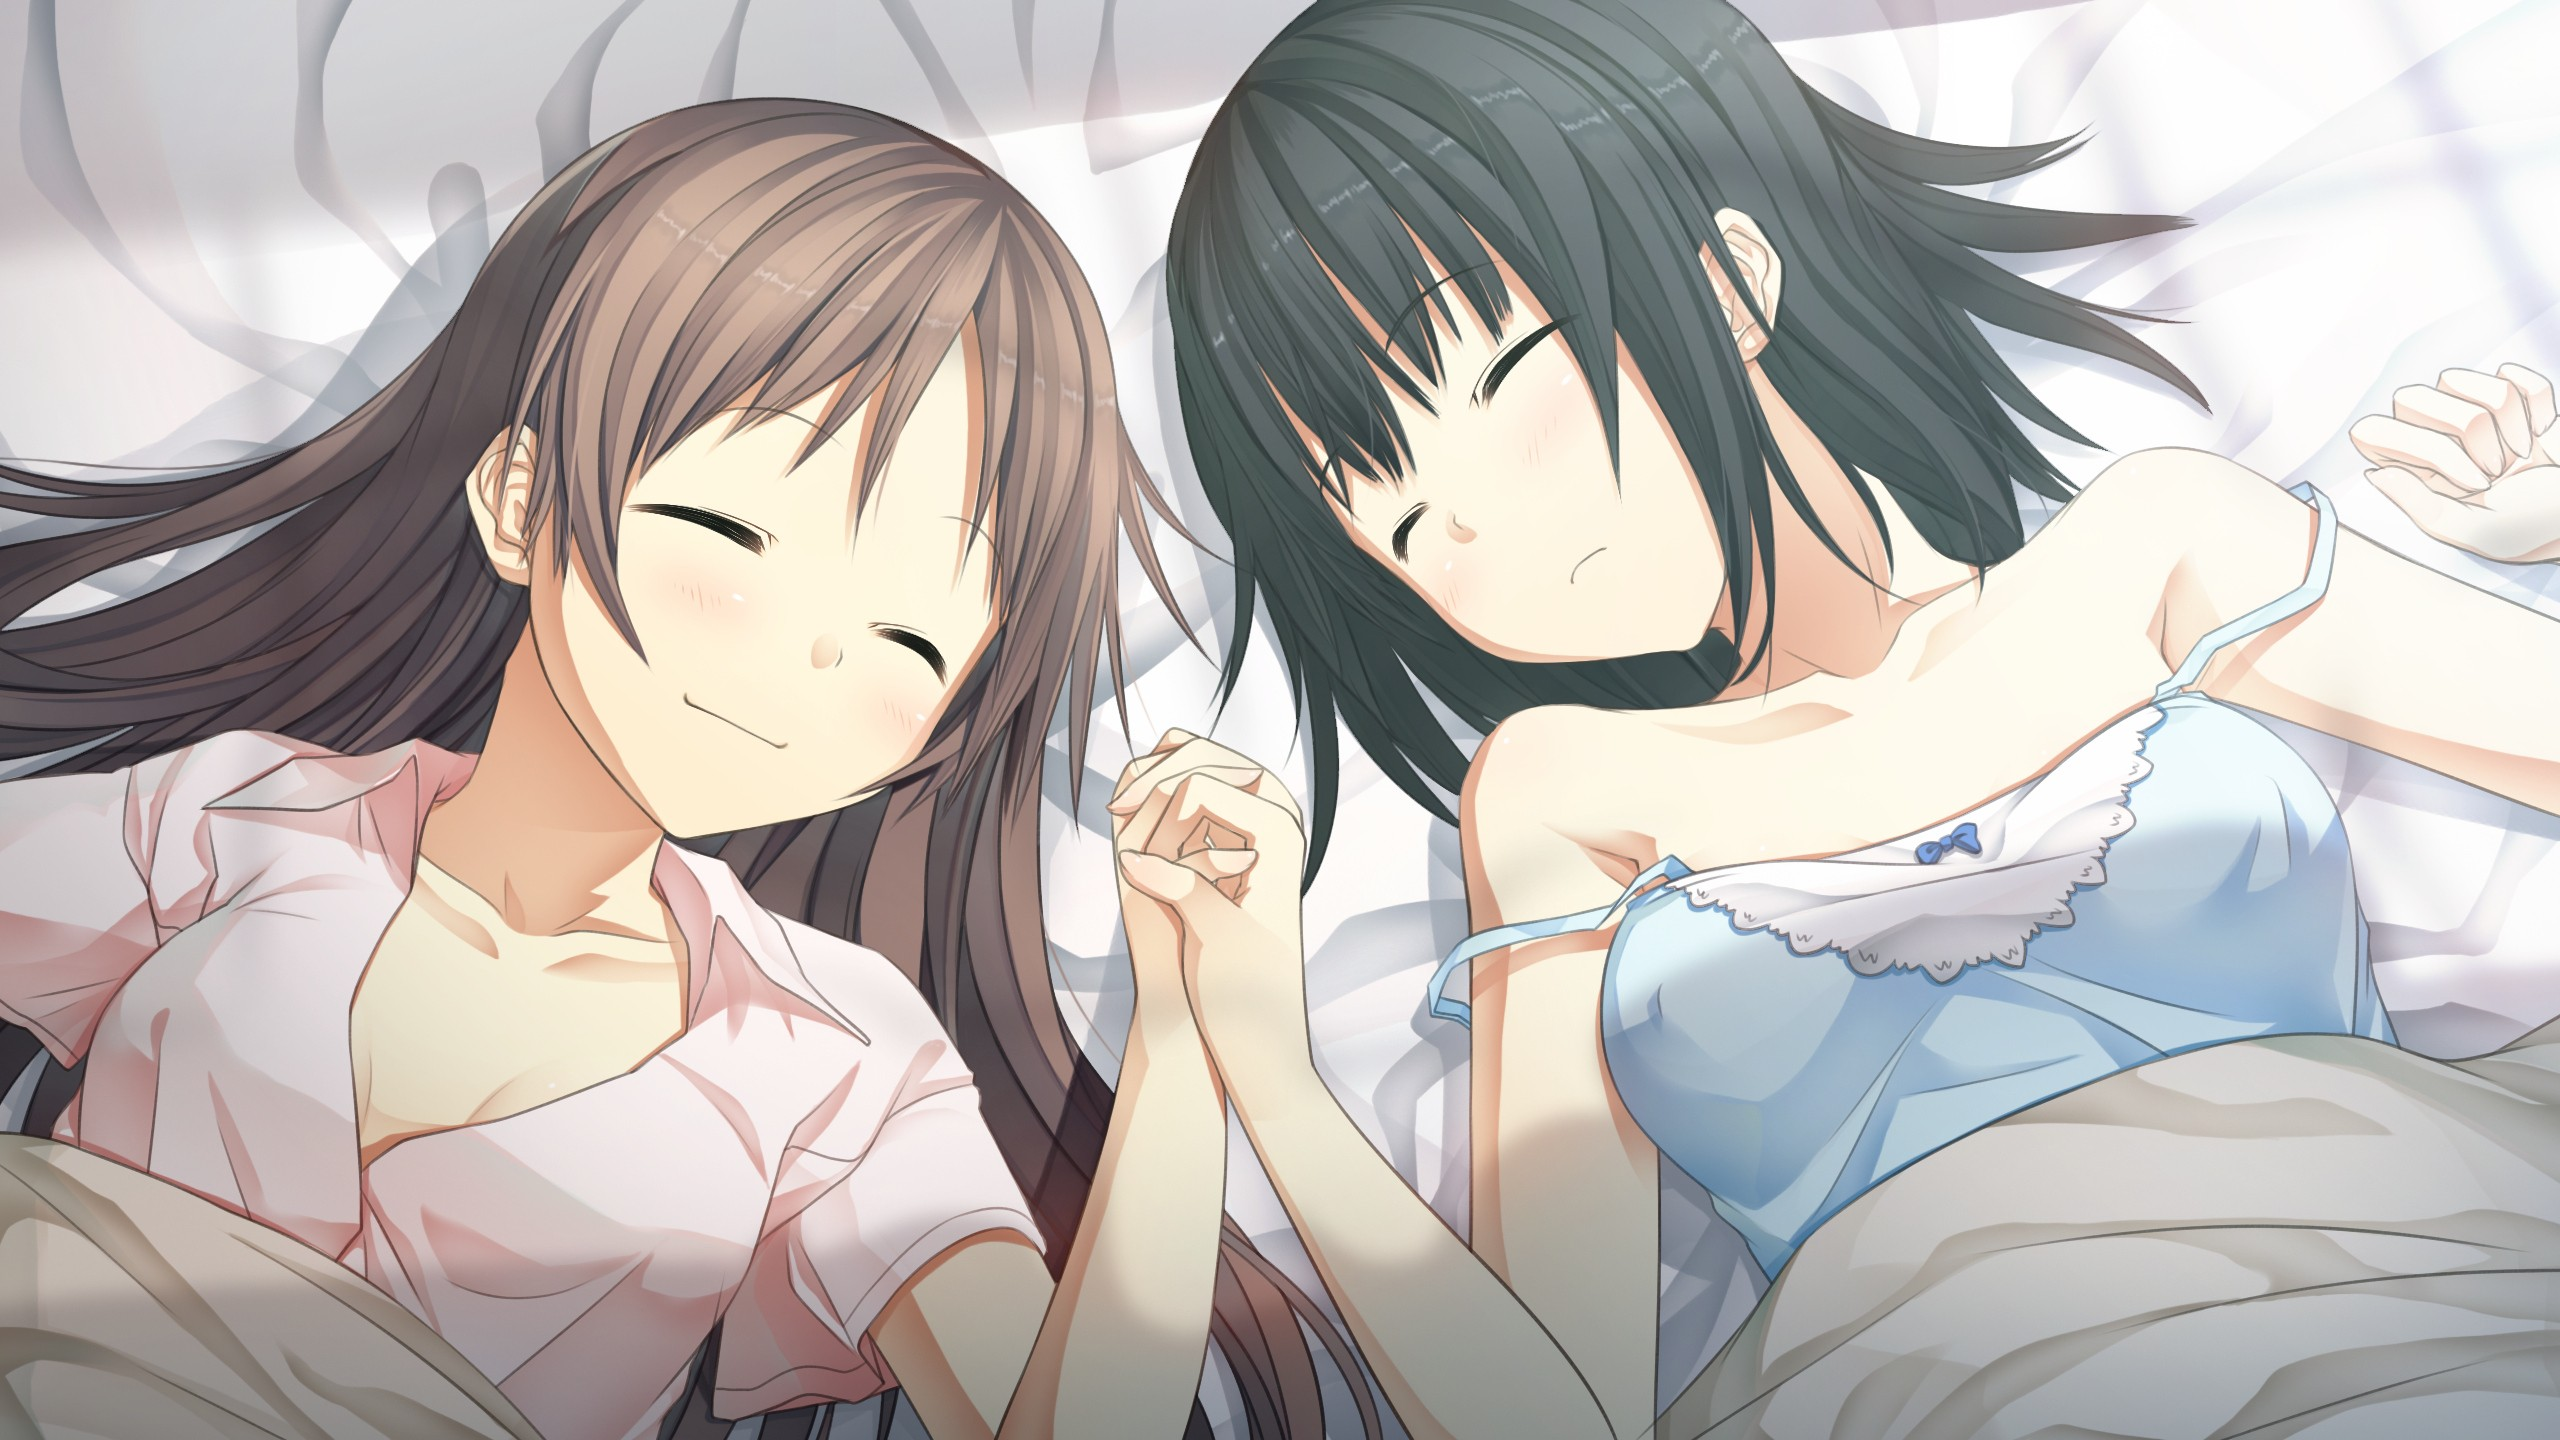 pillows game cg smiling sleeping closed eyes holding hands anime girls ... Best Friends Holding Hands Girls